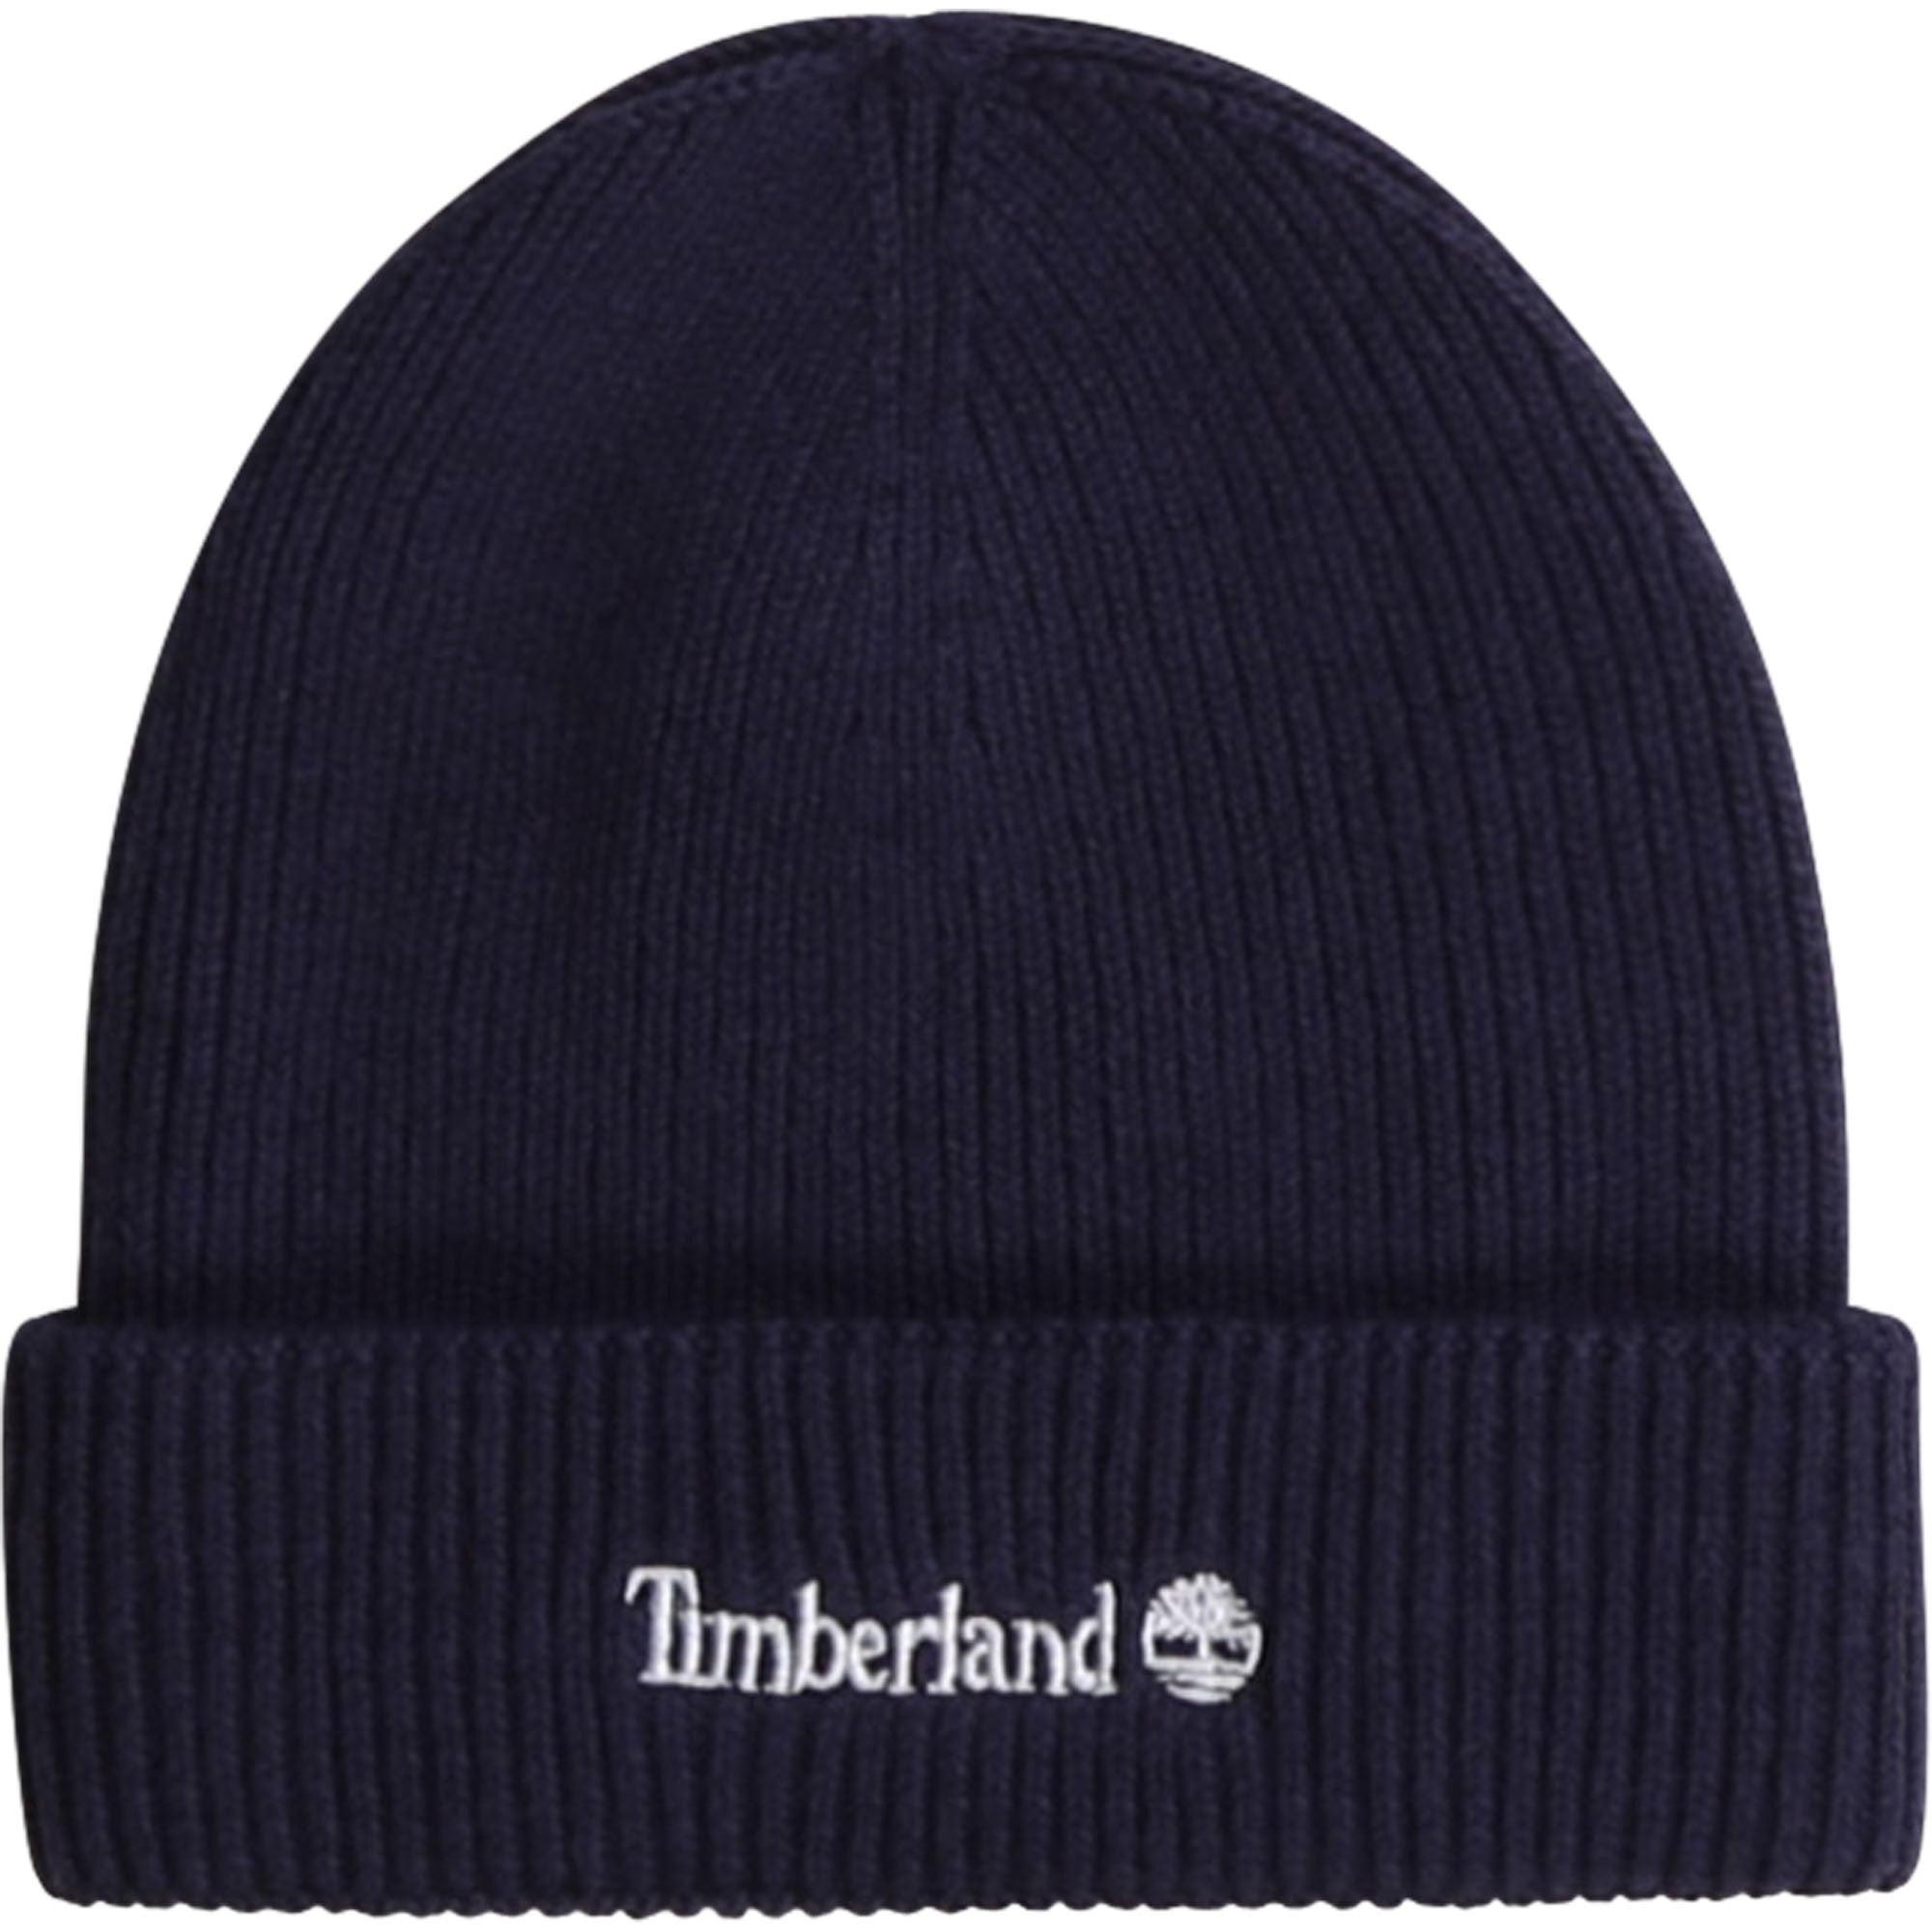 TIMBERLAND PULL ON HAT NAVY